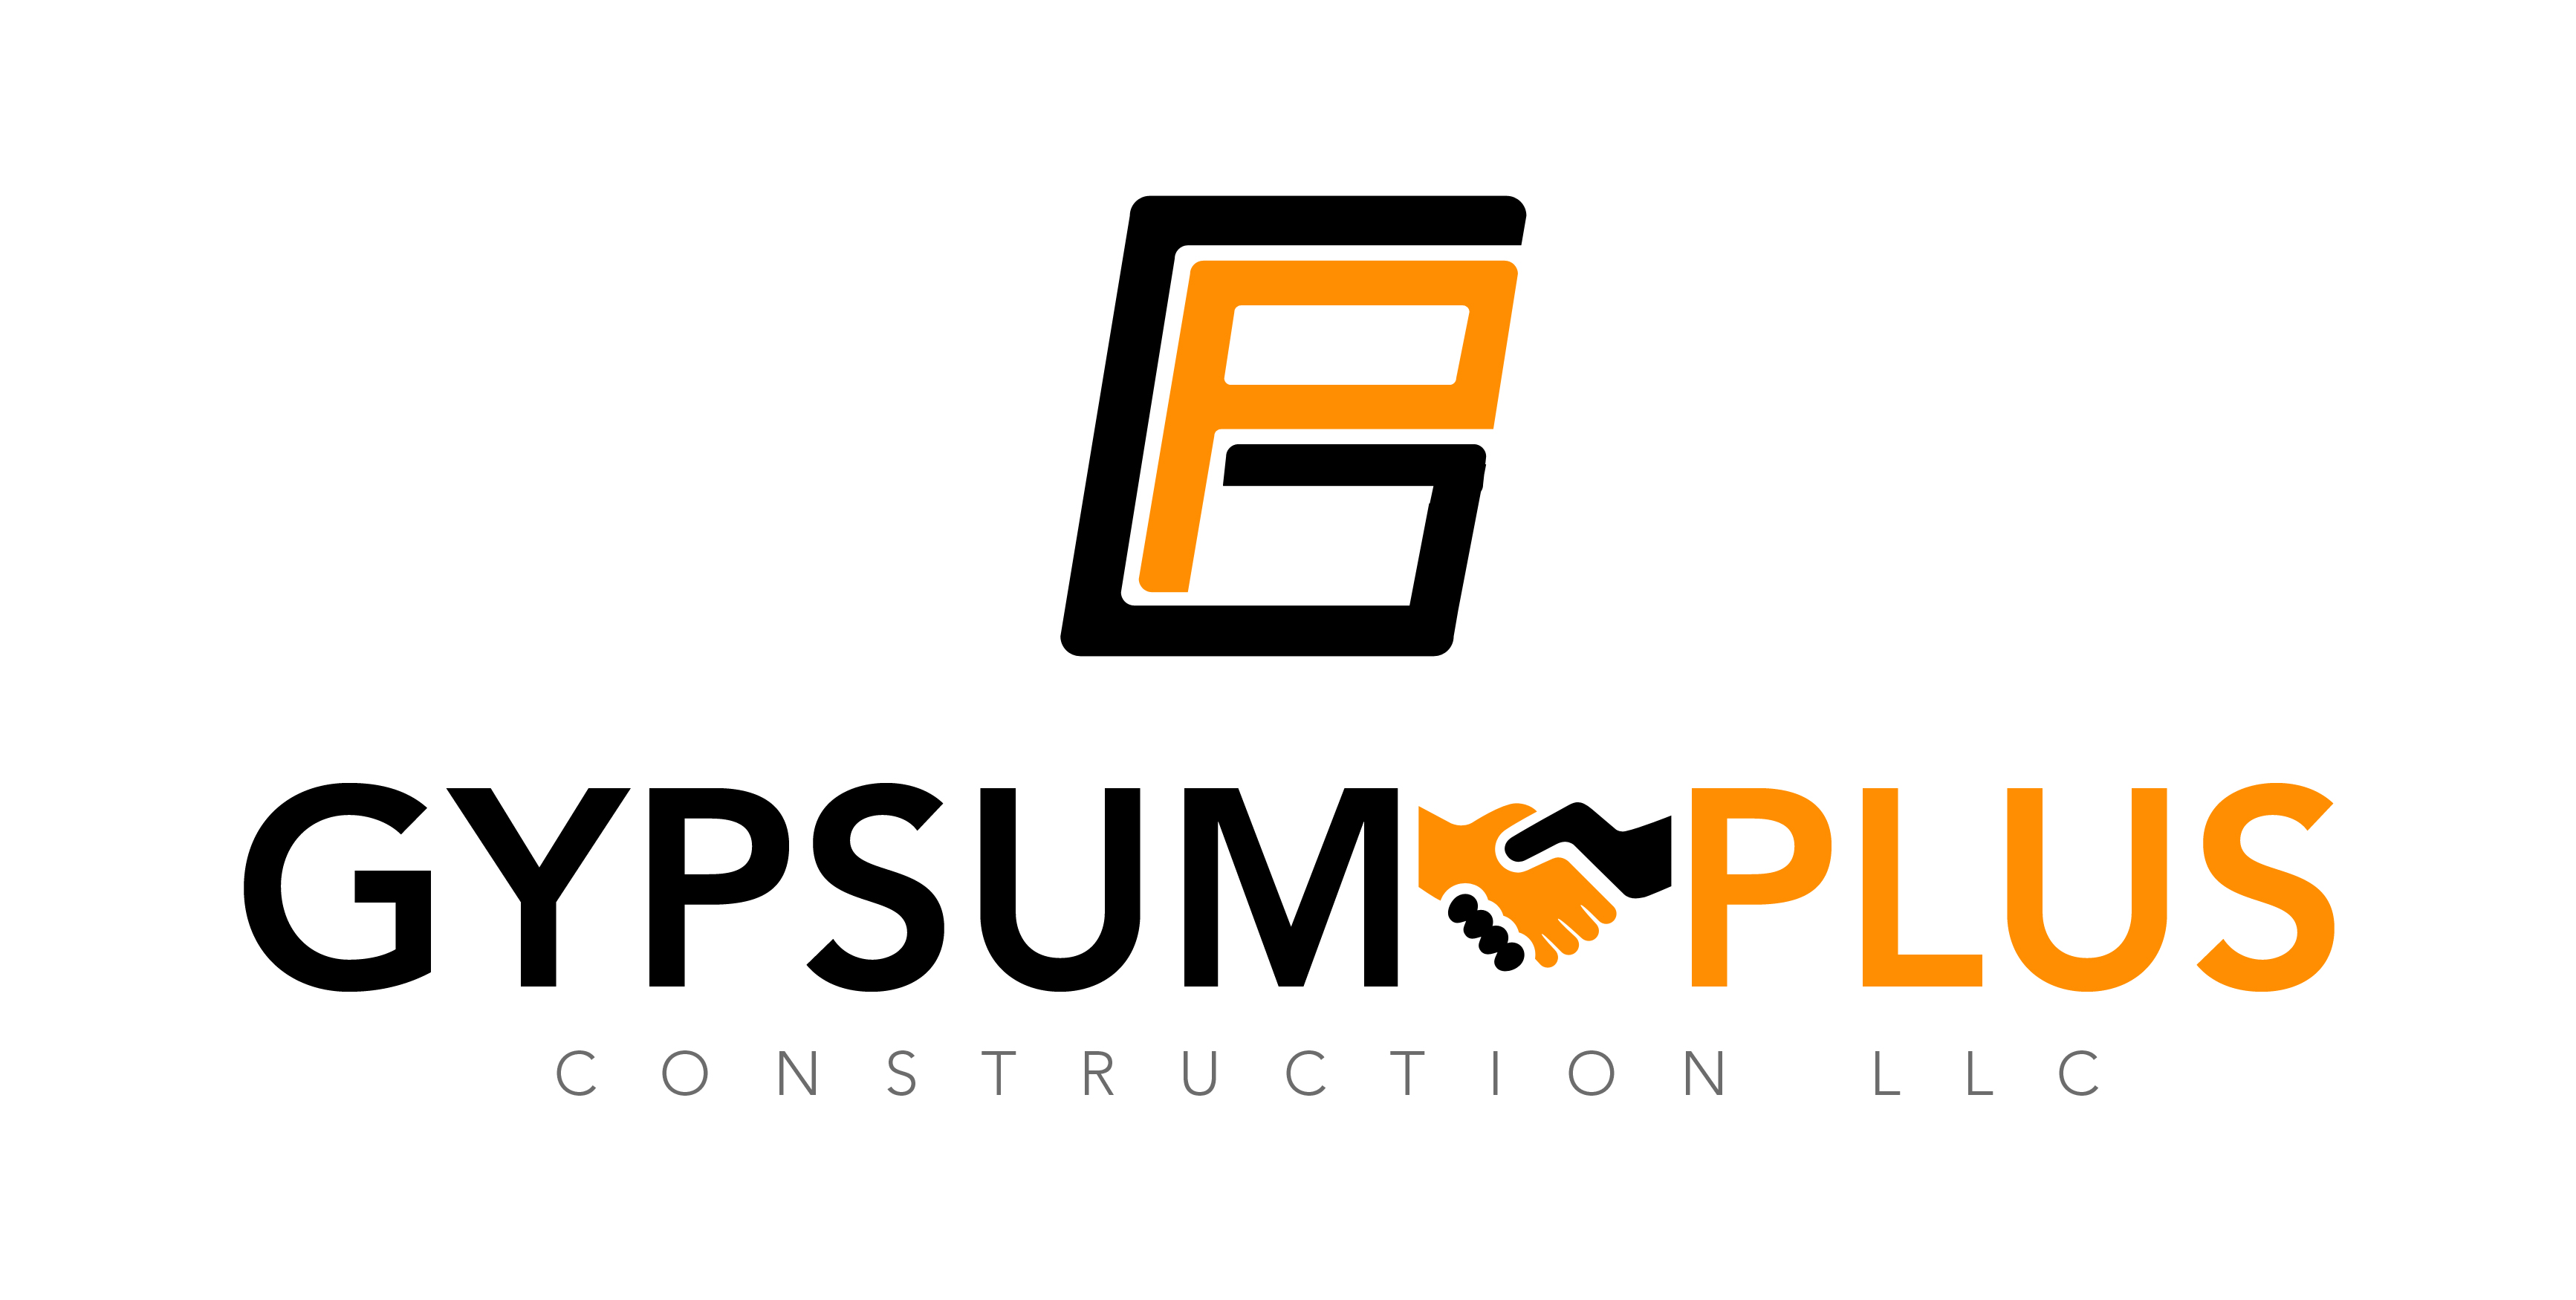 Gypsum Plus Construction LLC